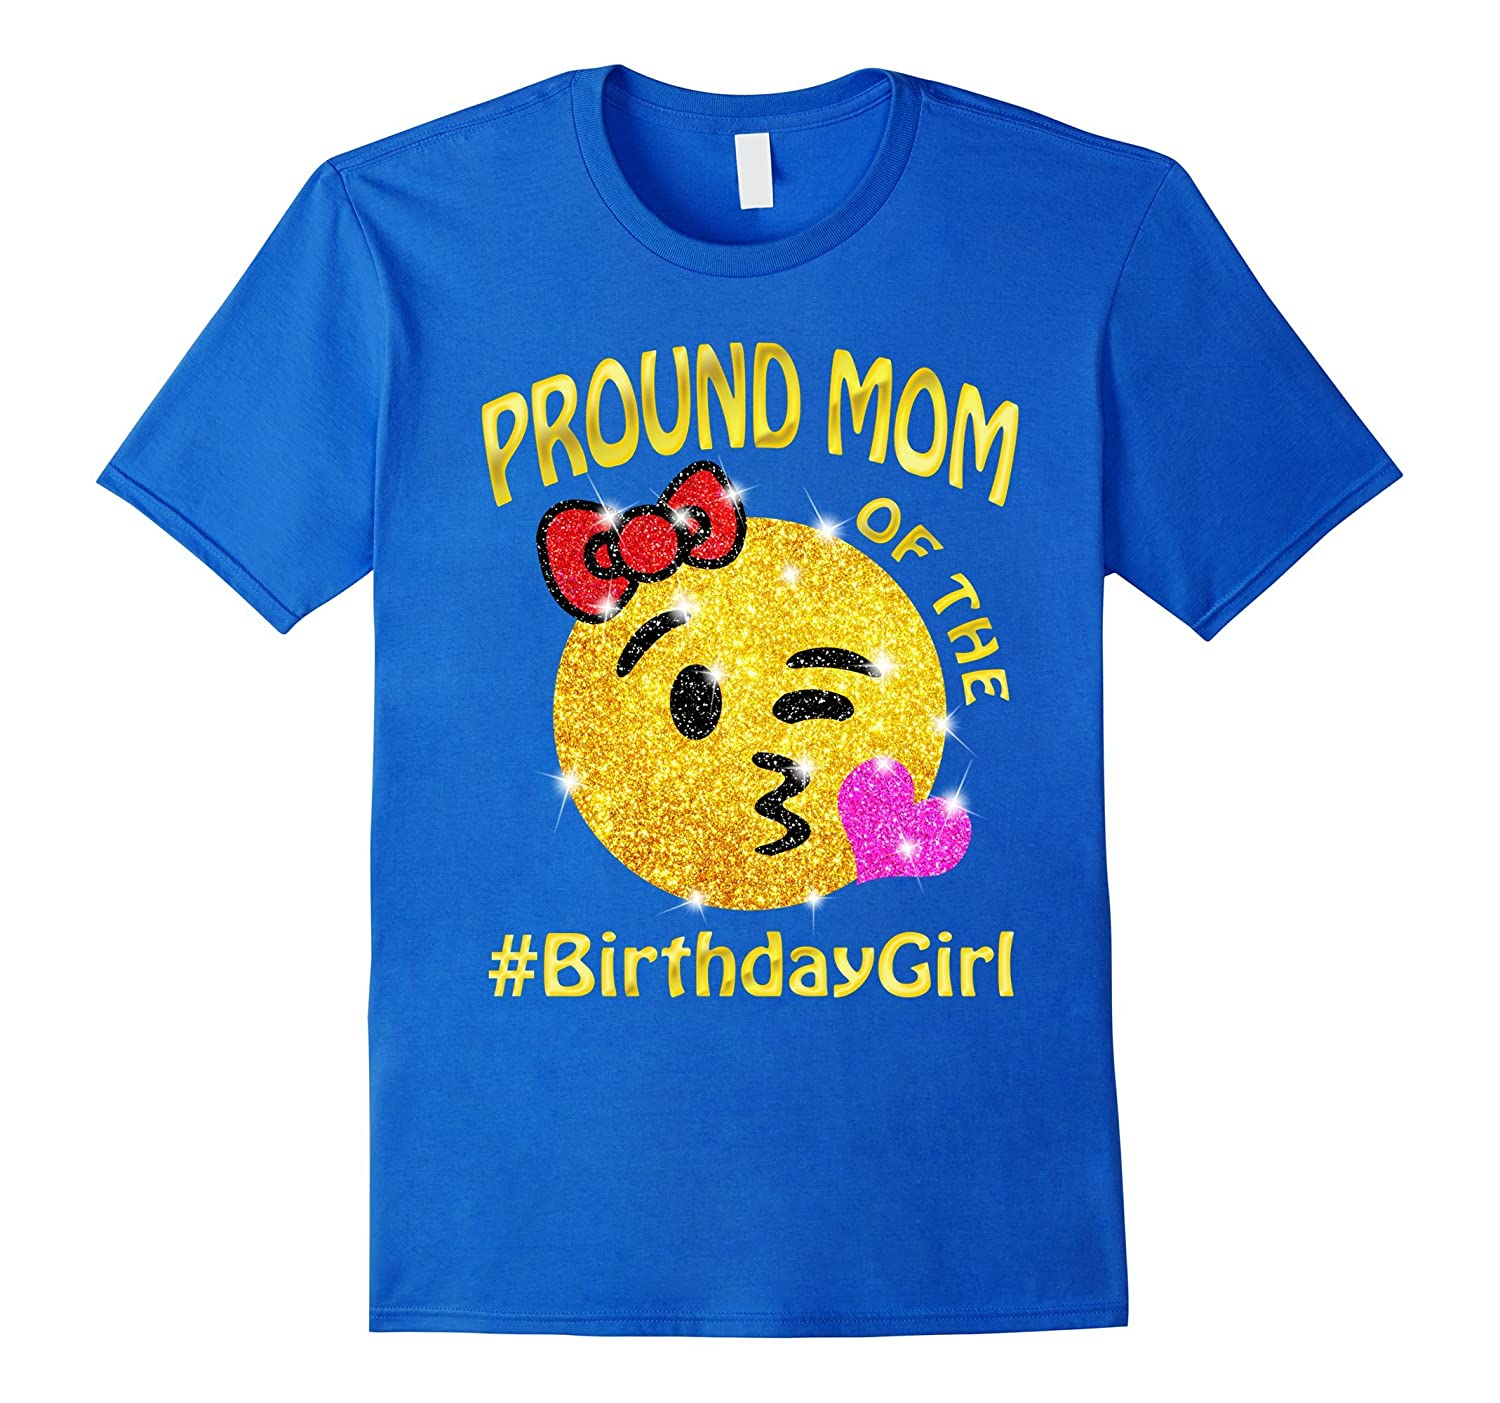 Pround Mom Of The Birthday Girl Emoji Mommy Mother T Shirt